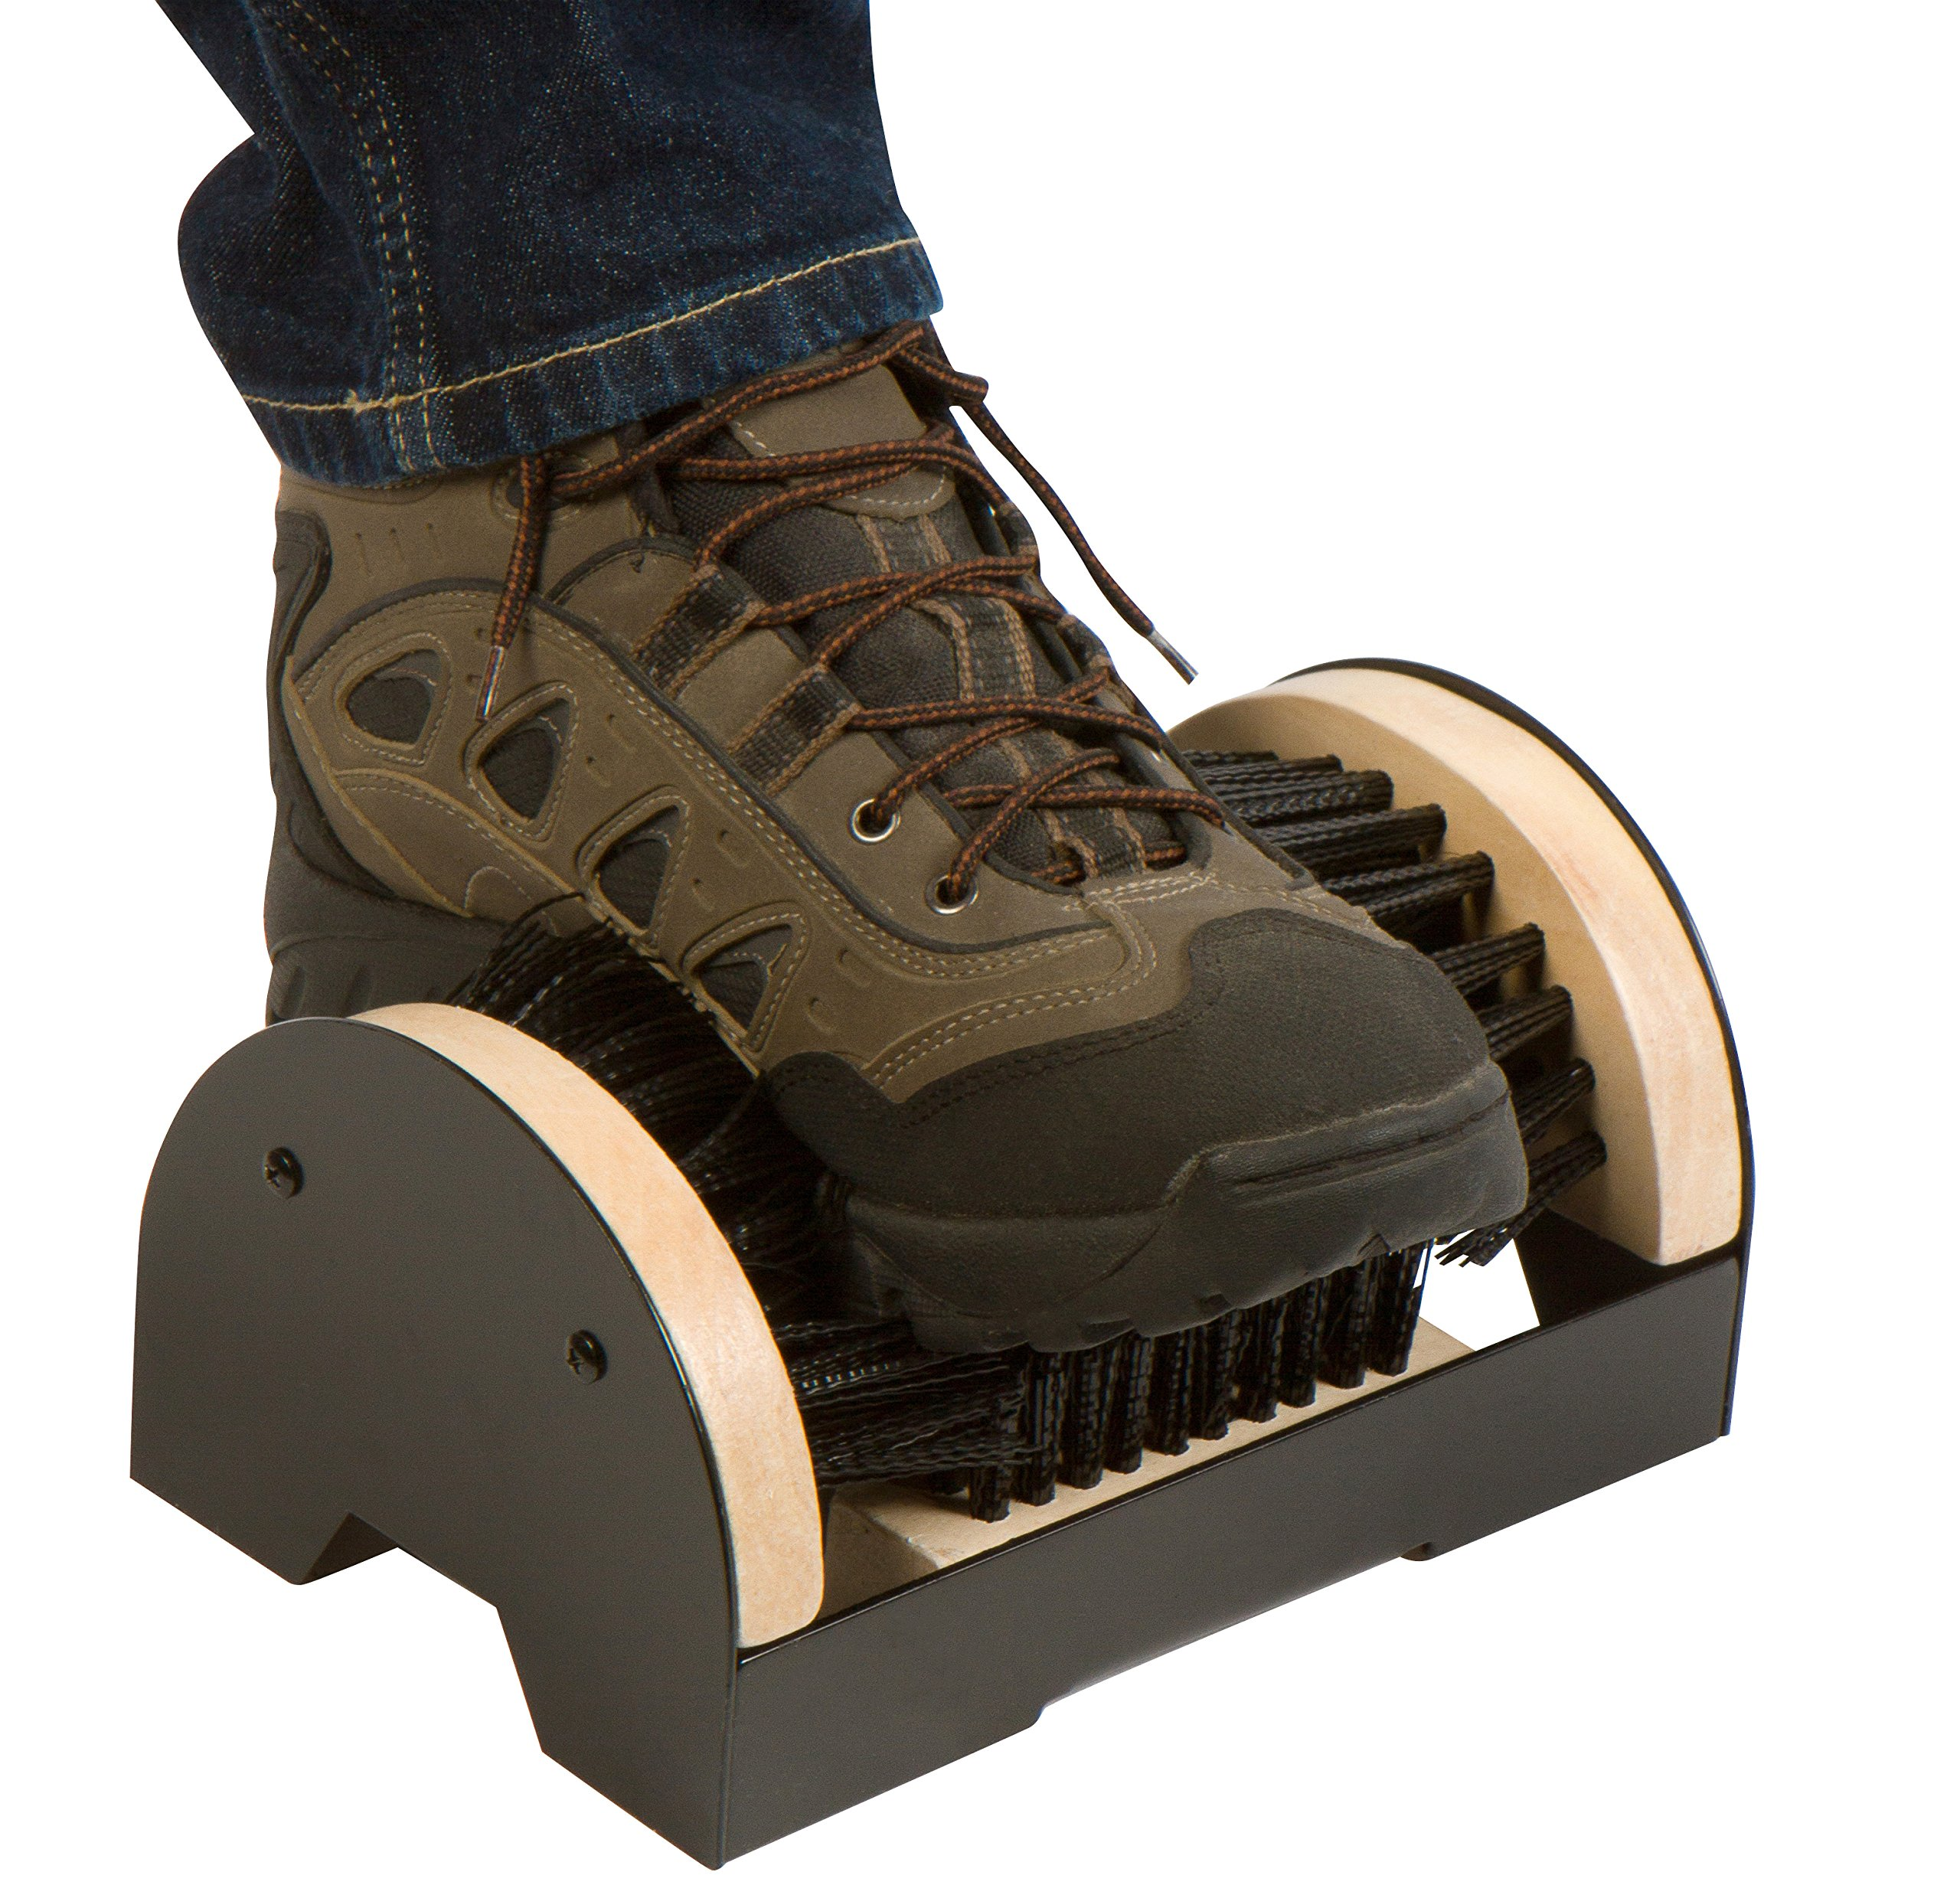 Boot and Shoe Brush Cleaner Scraper For Outdoor Mud by Trademark Innovations by Trademark Innovations (Image #2)